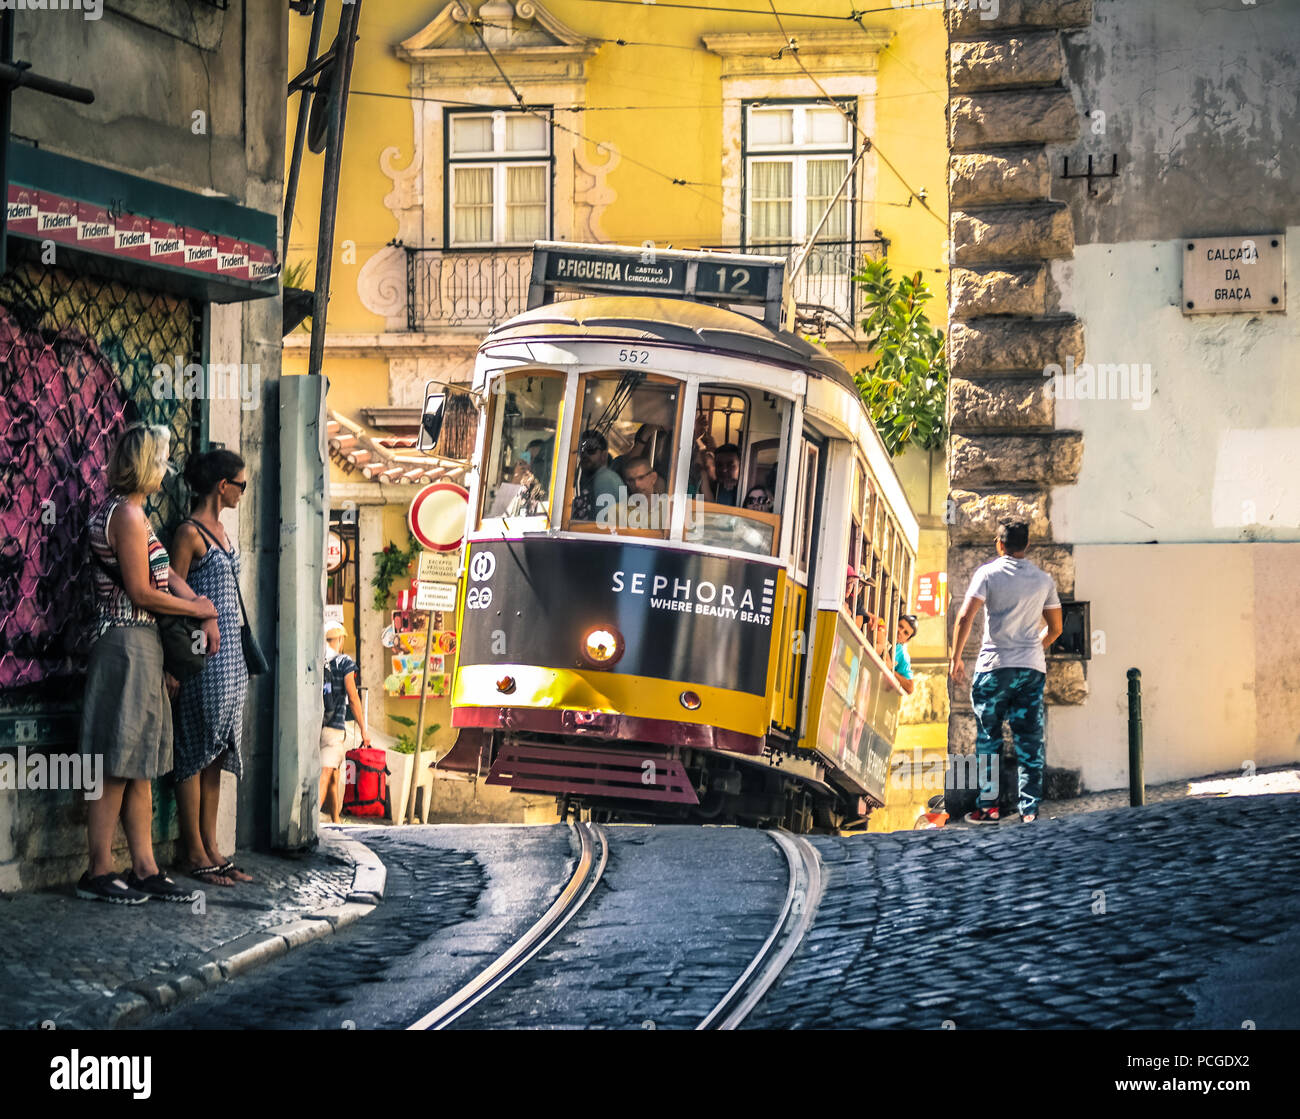 Lisbon. Famous old tram climbing uphill in Alfama. - Stock Image